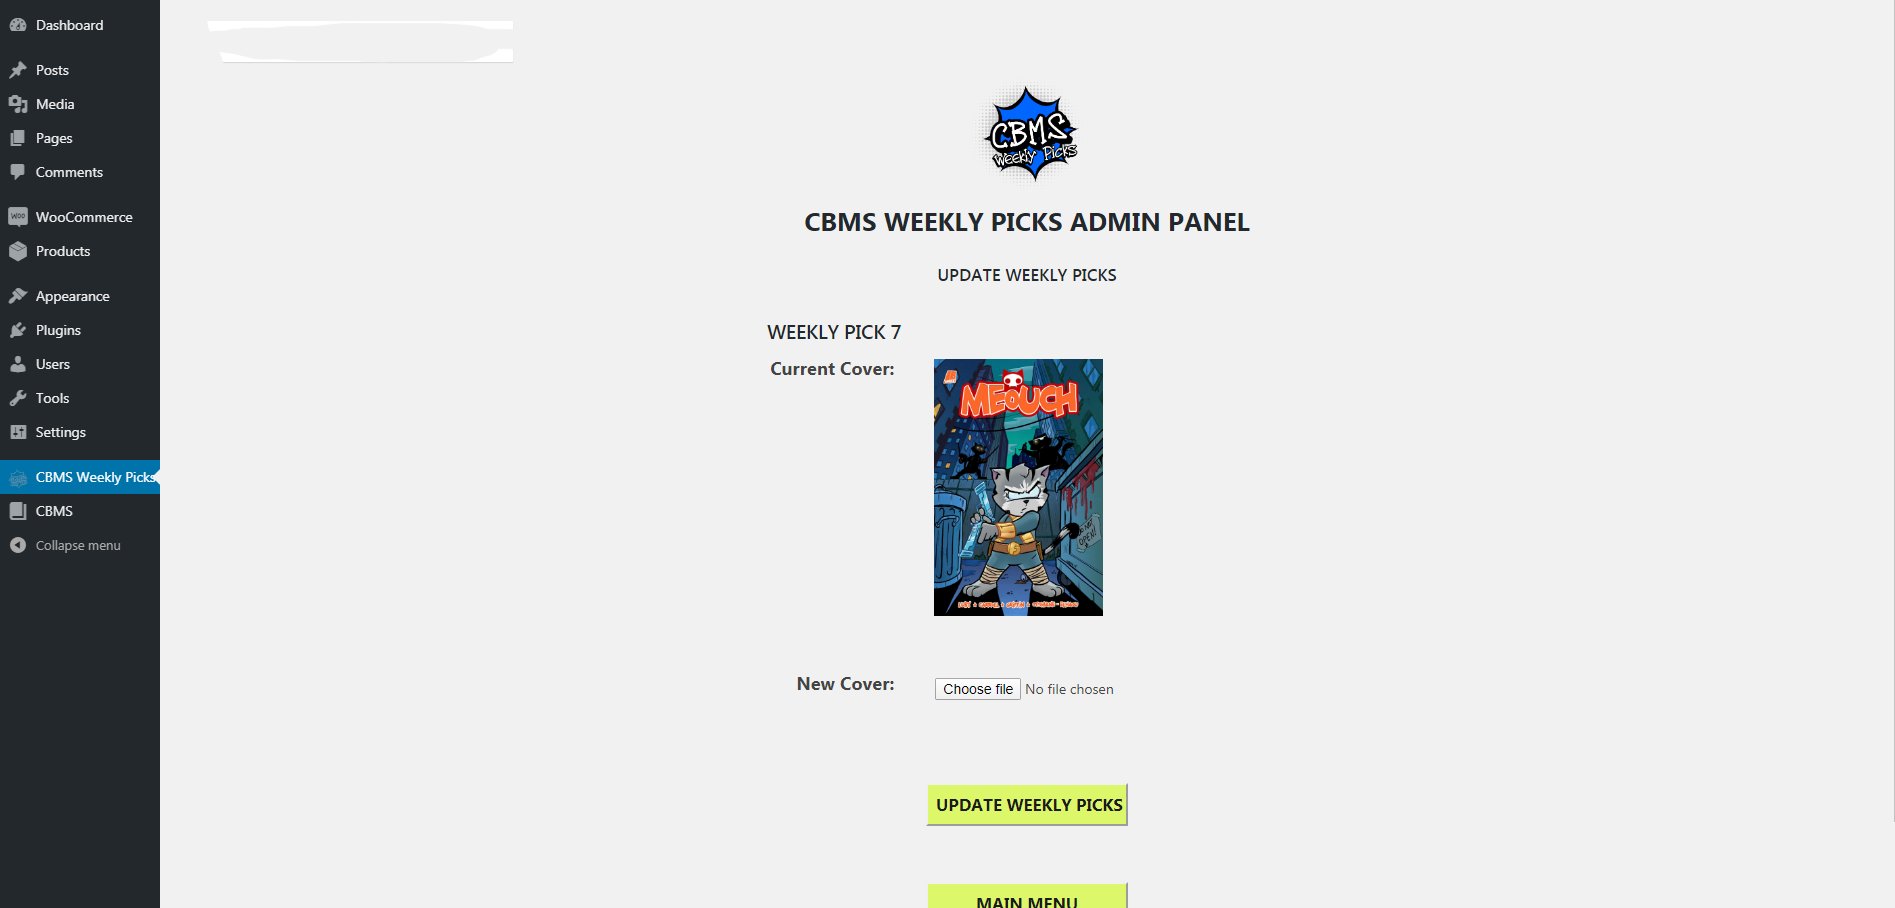 comic book management system weekly picks edit weekly picks